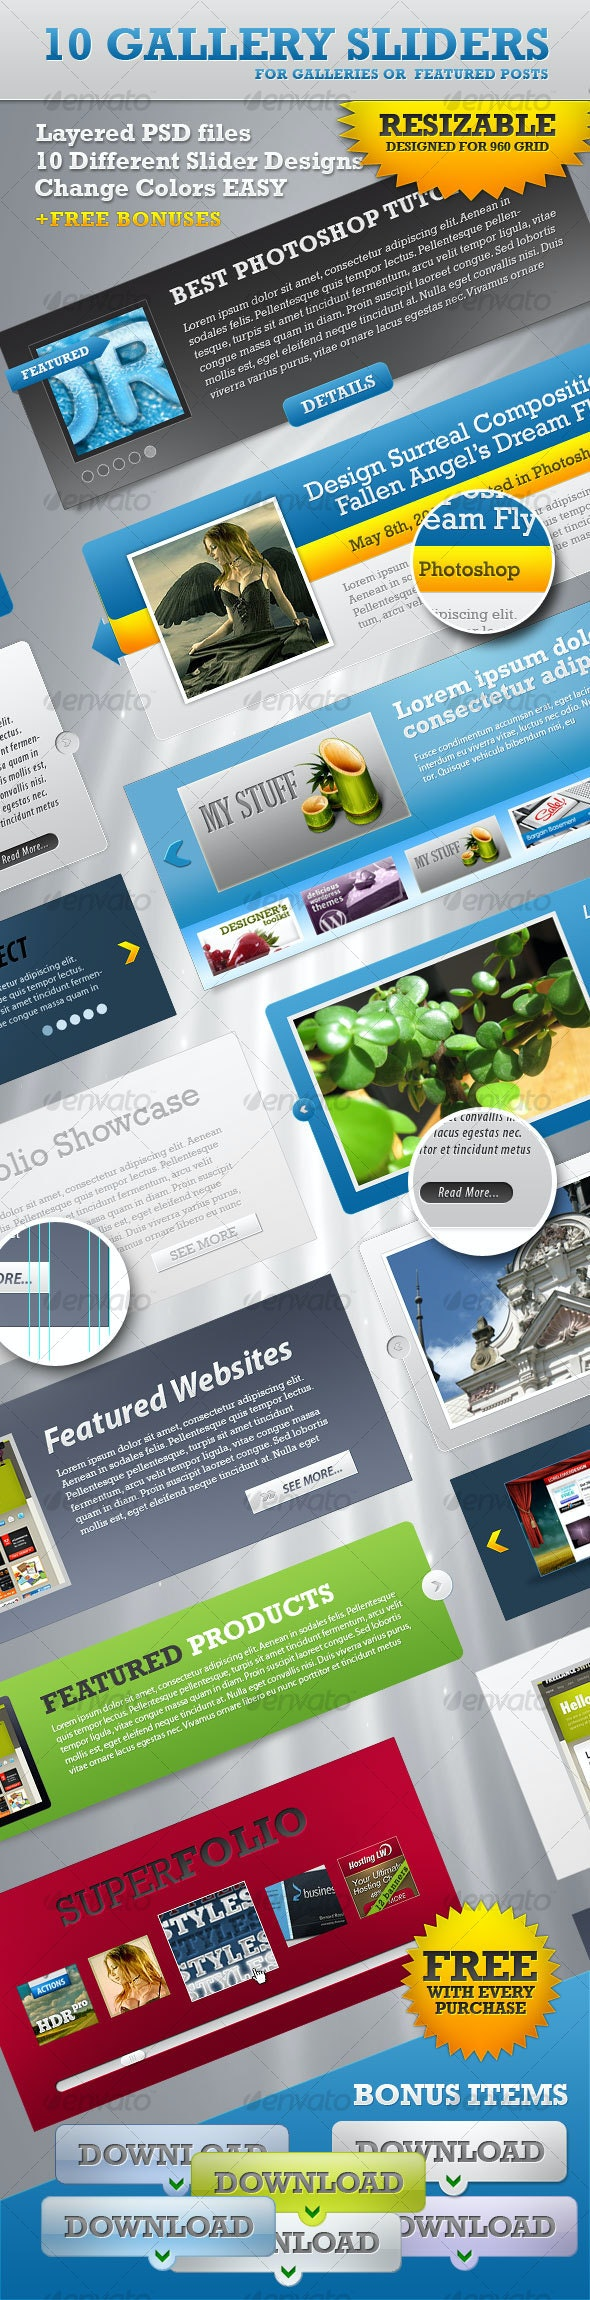 Gallery Slideshows - Web Elements